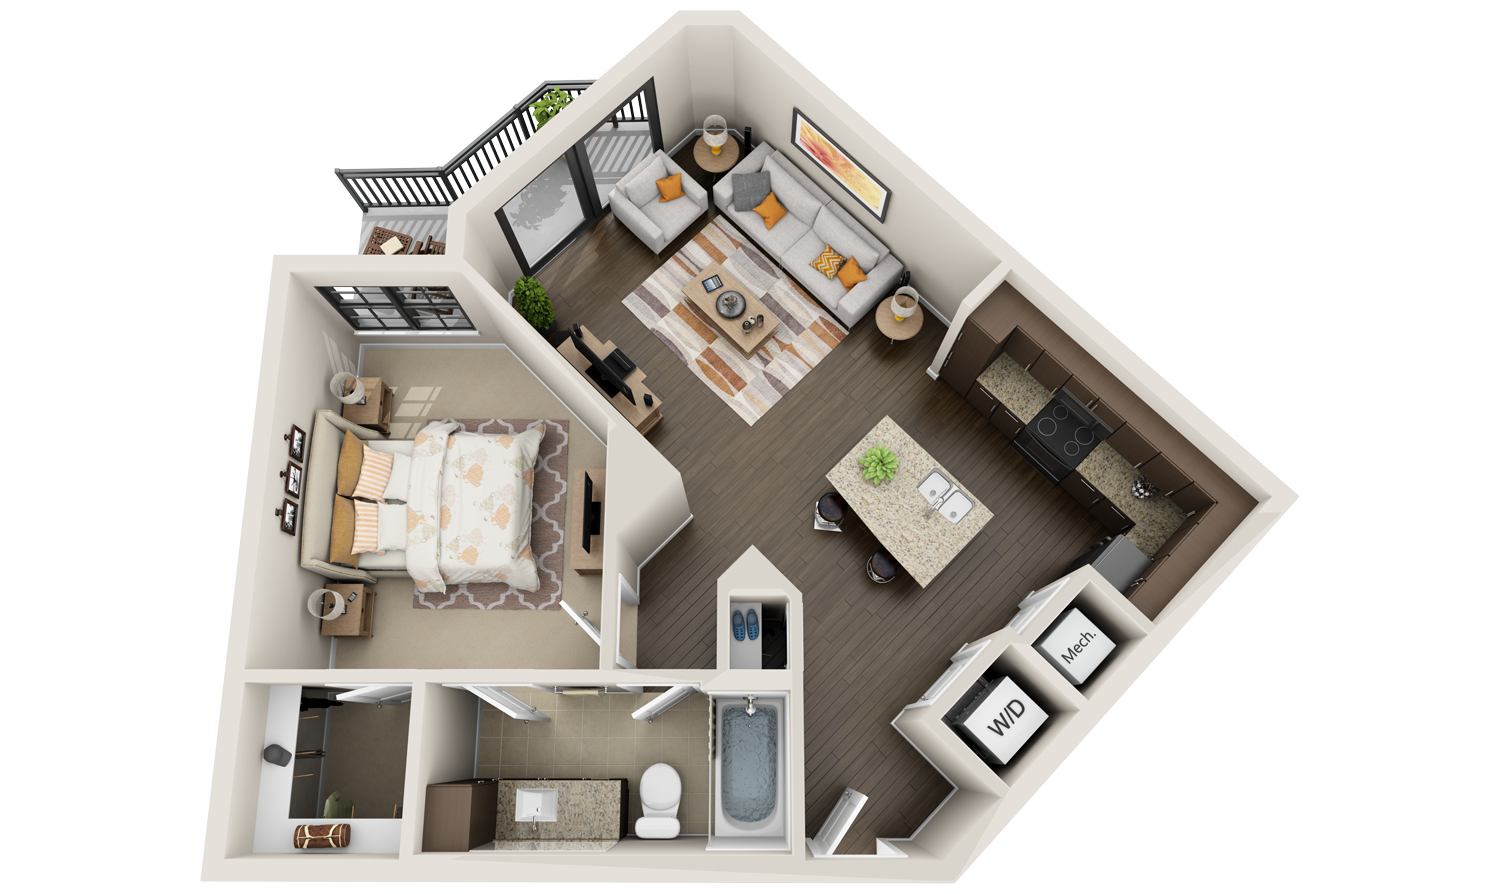 3d floor plans for apartments get your quote now for Apartment 3d